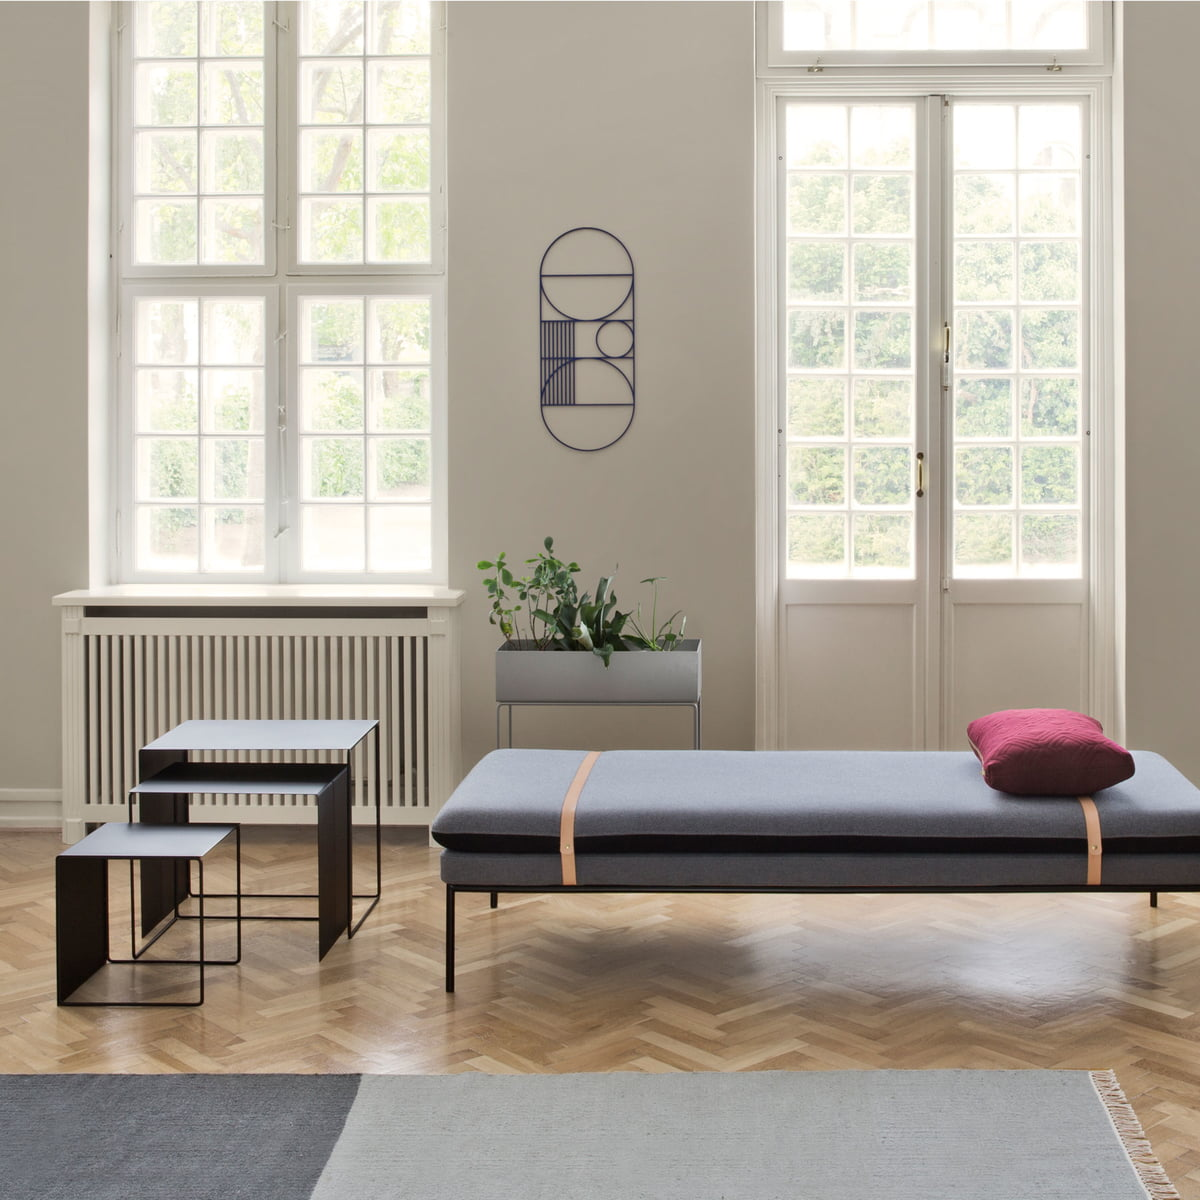 kelim teppich section von ferm living bei. Black Bedroom Furniture Sets. Home Design Ideas